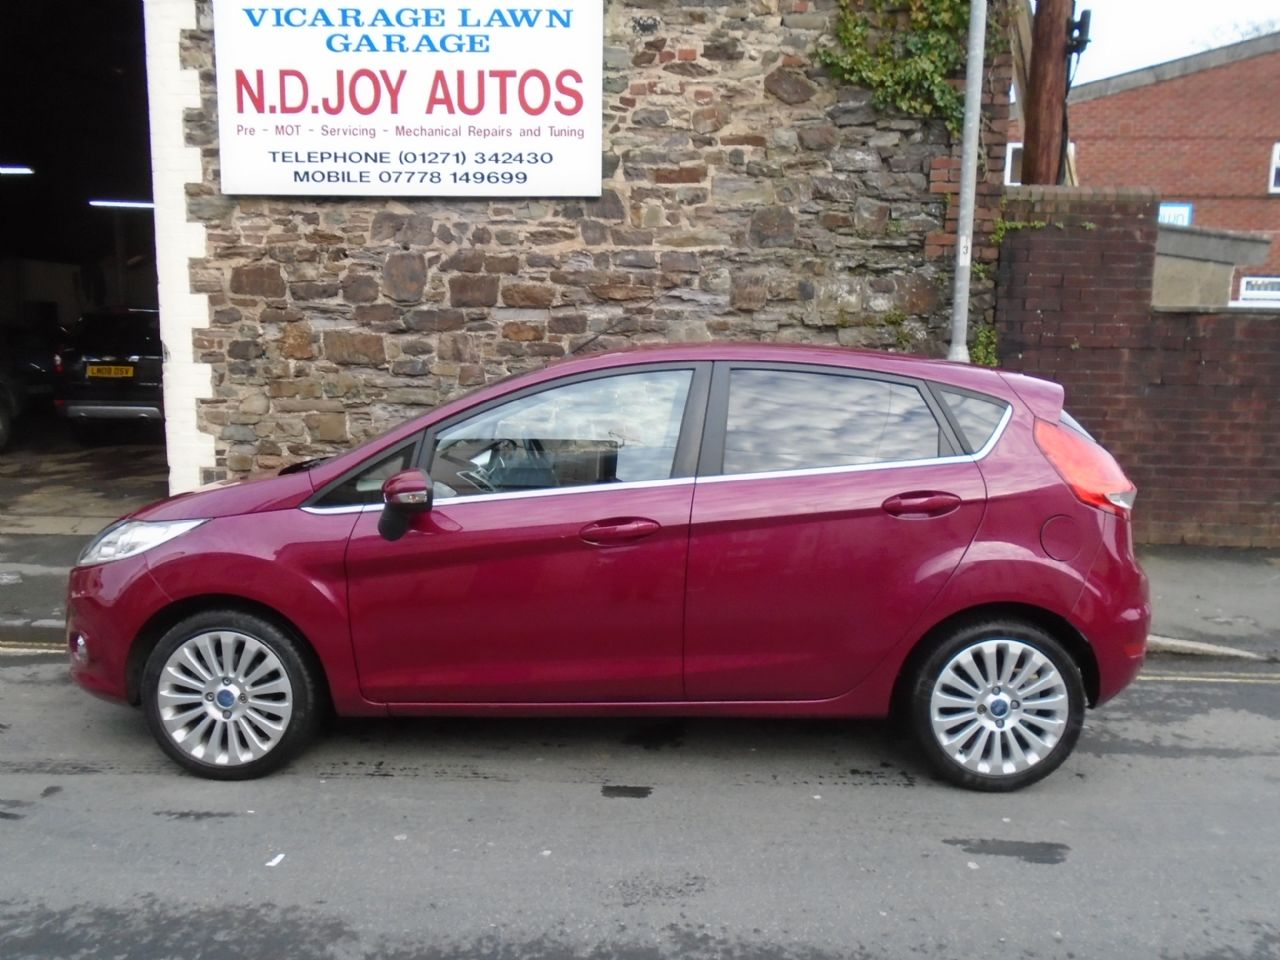 FORDFIESTATitanium 1.4 096 for sale